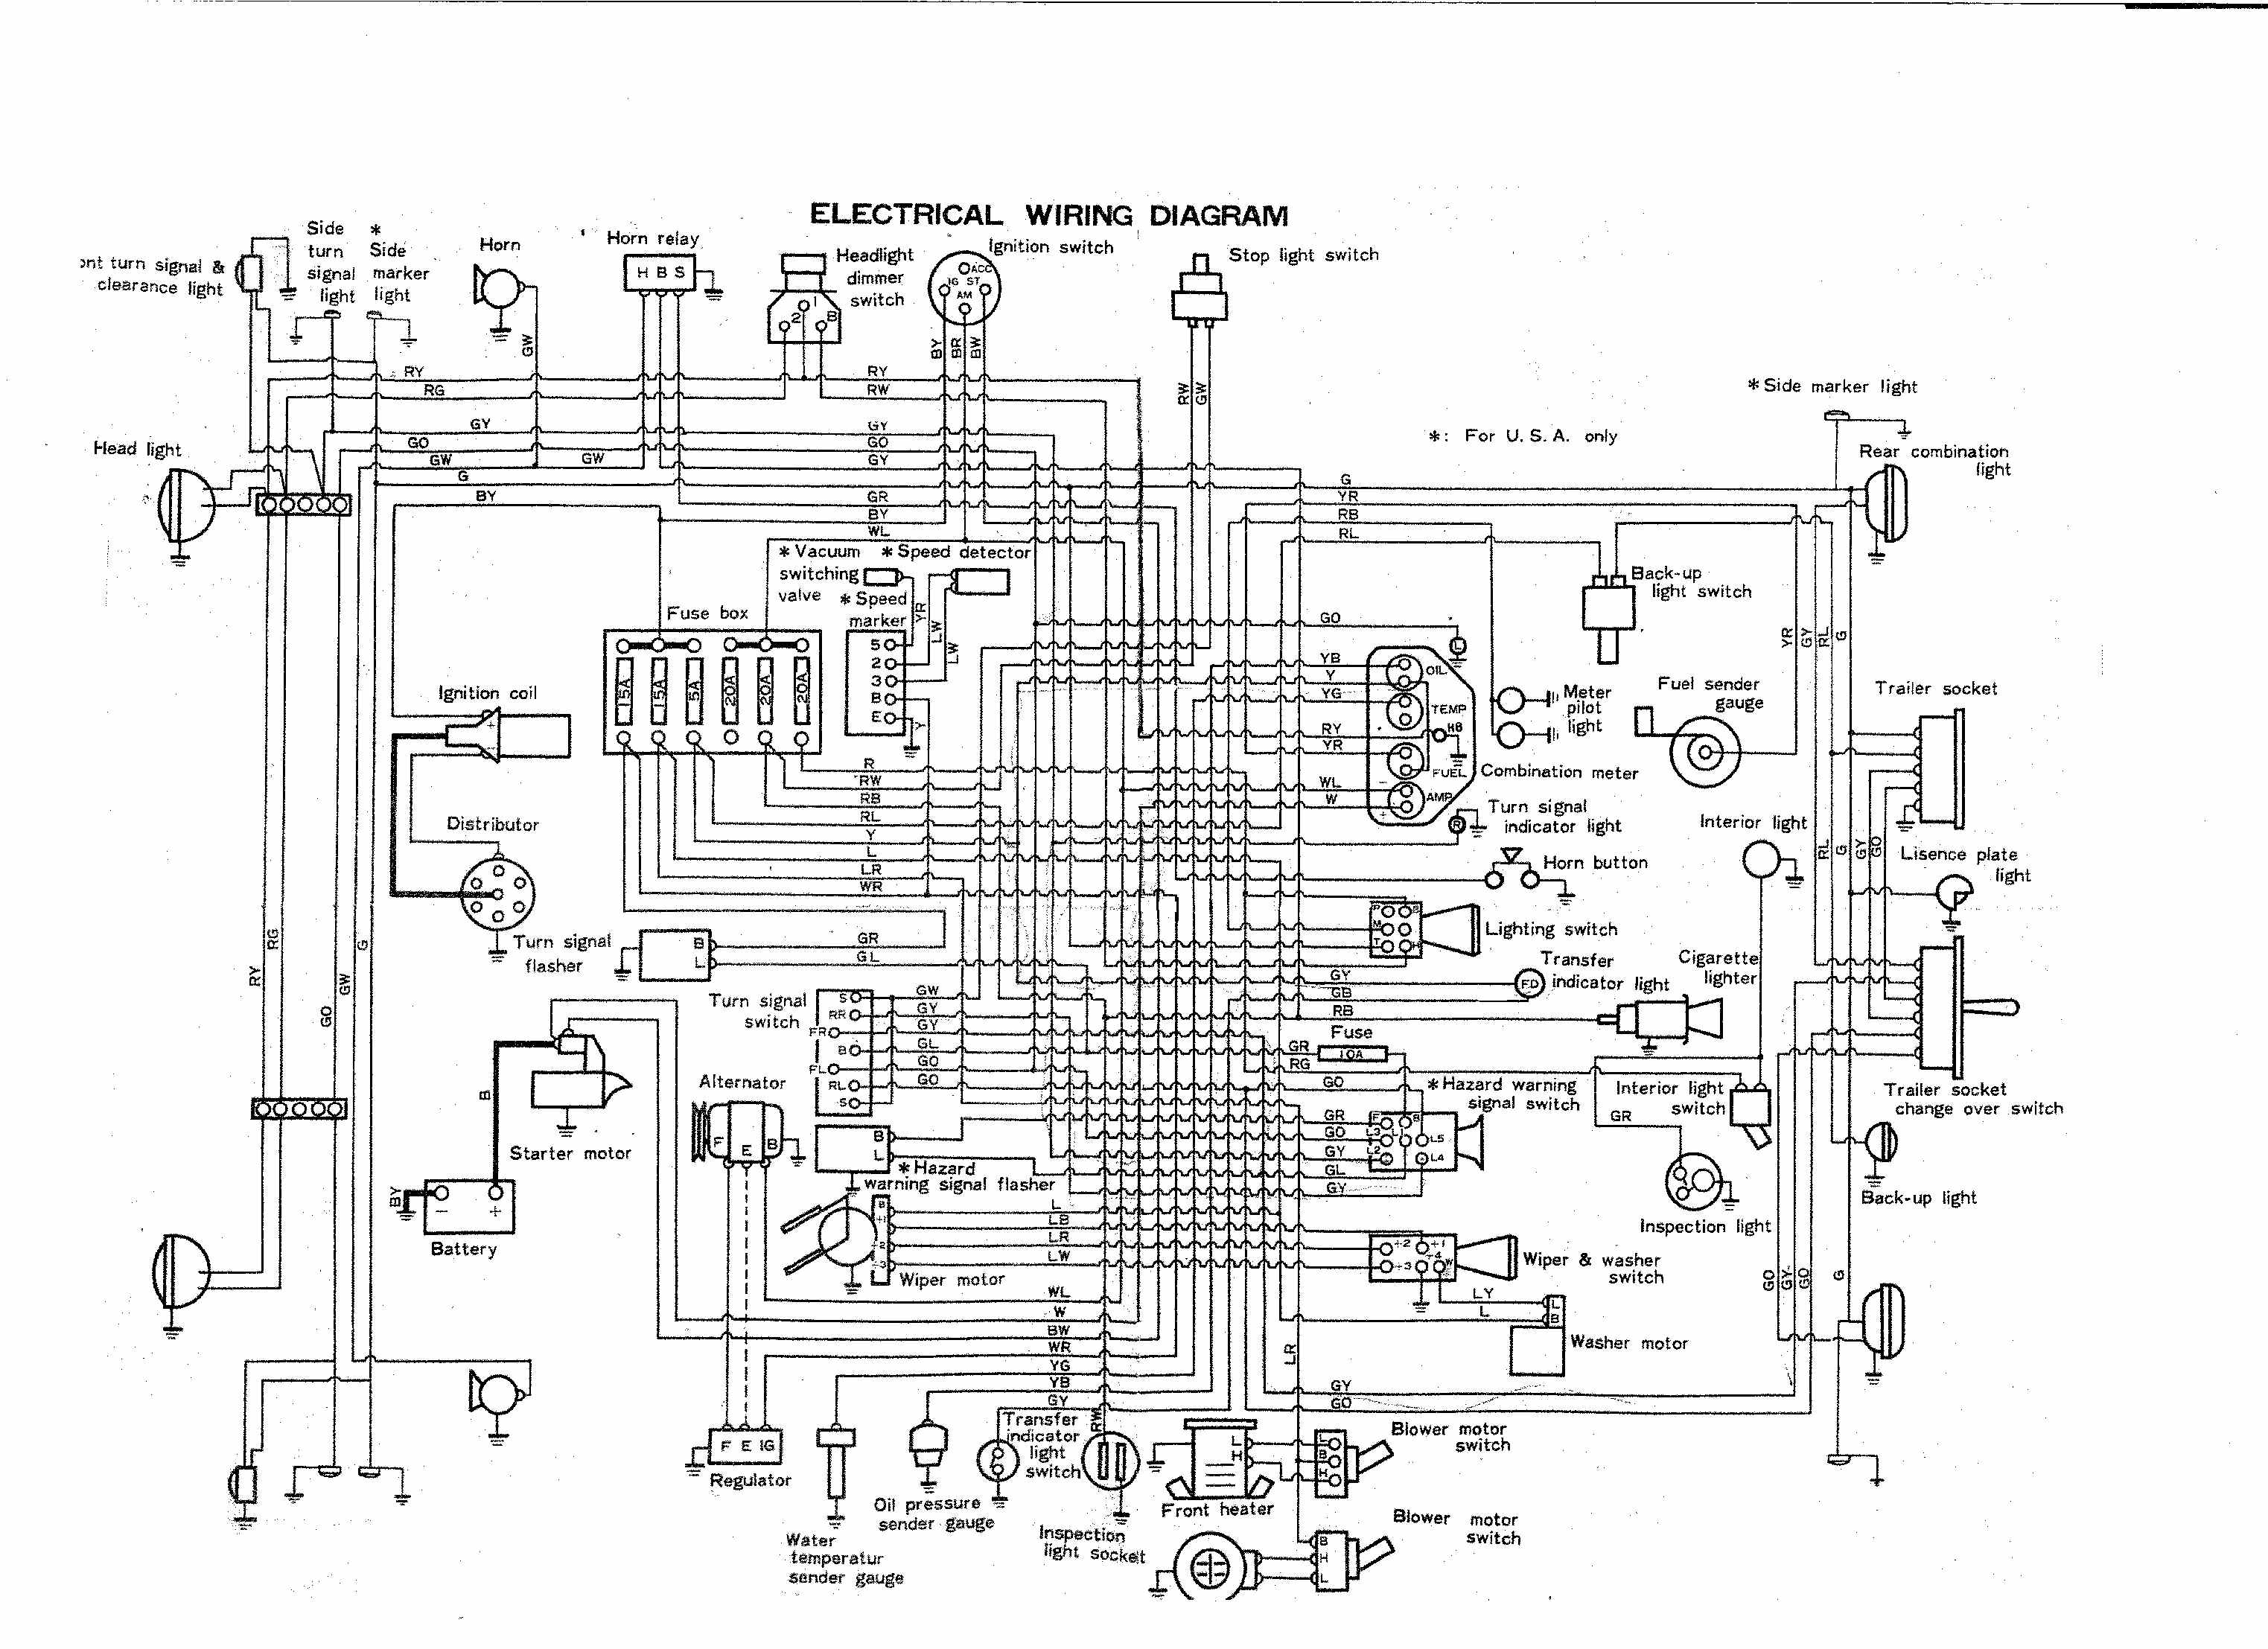 1970 FJ40 fj40 wiring diagram fj40 dash diagram \u2022 wiring diagrams j squared co 1984 fj40 fuse box diagram at bakdesigns.co